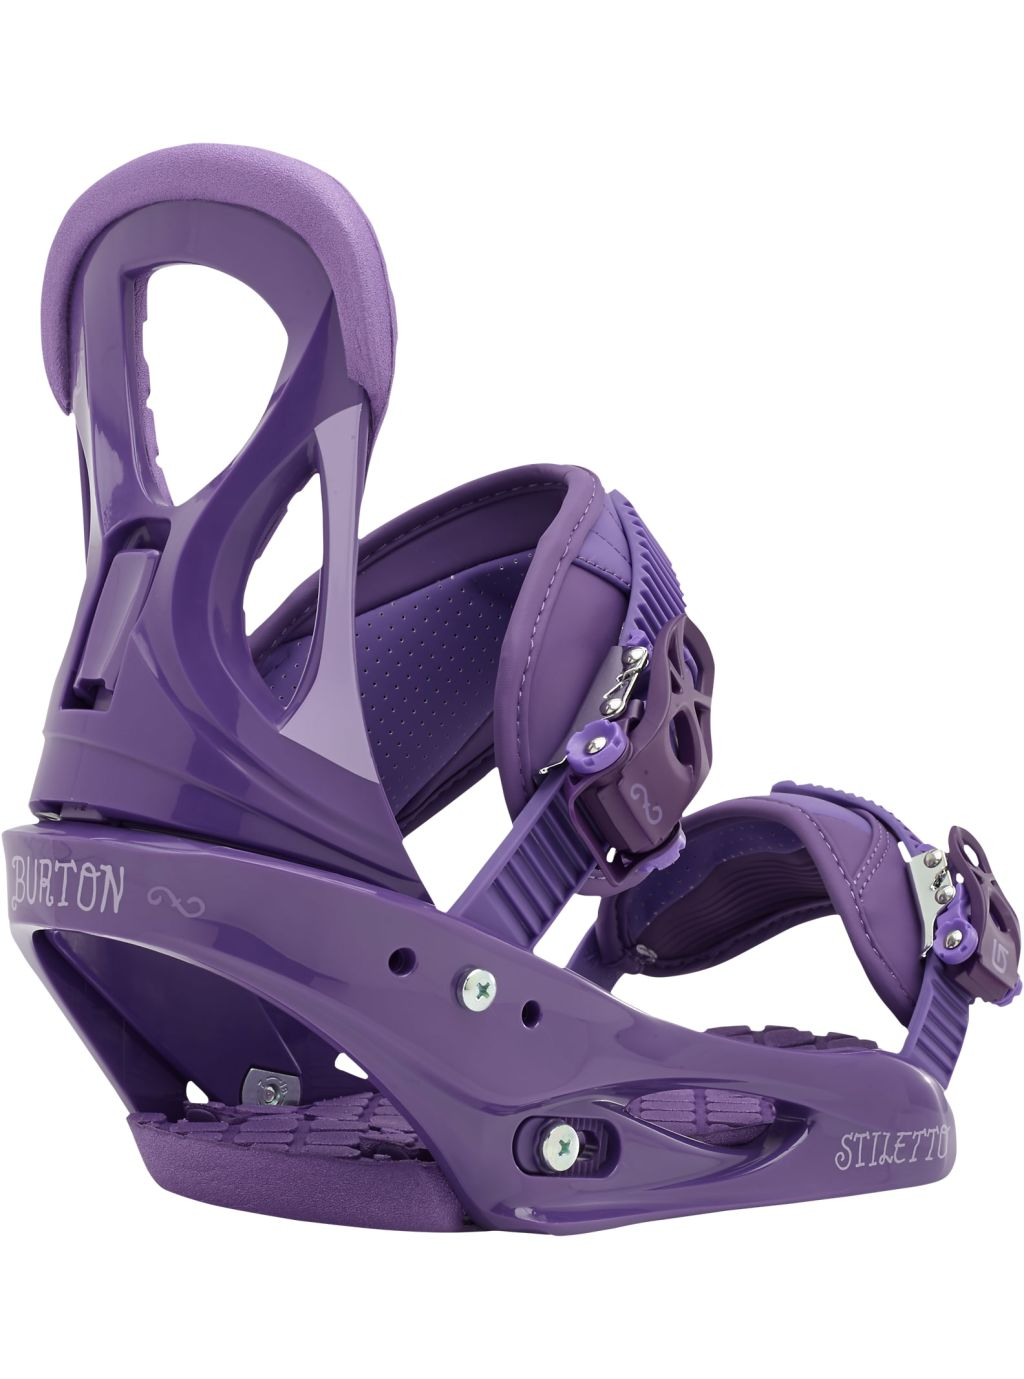 Burton Stiletto W